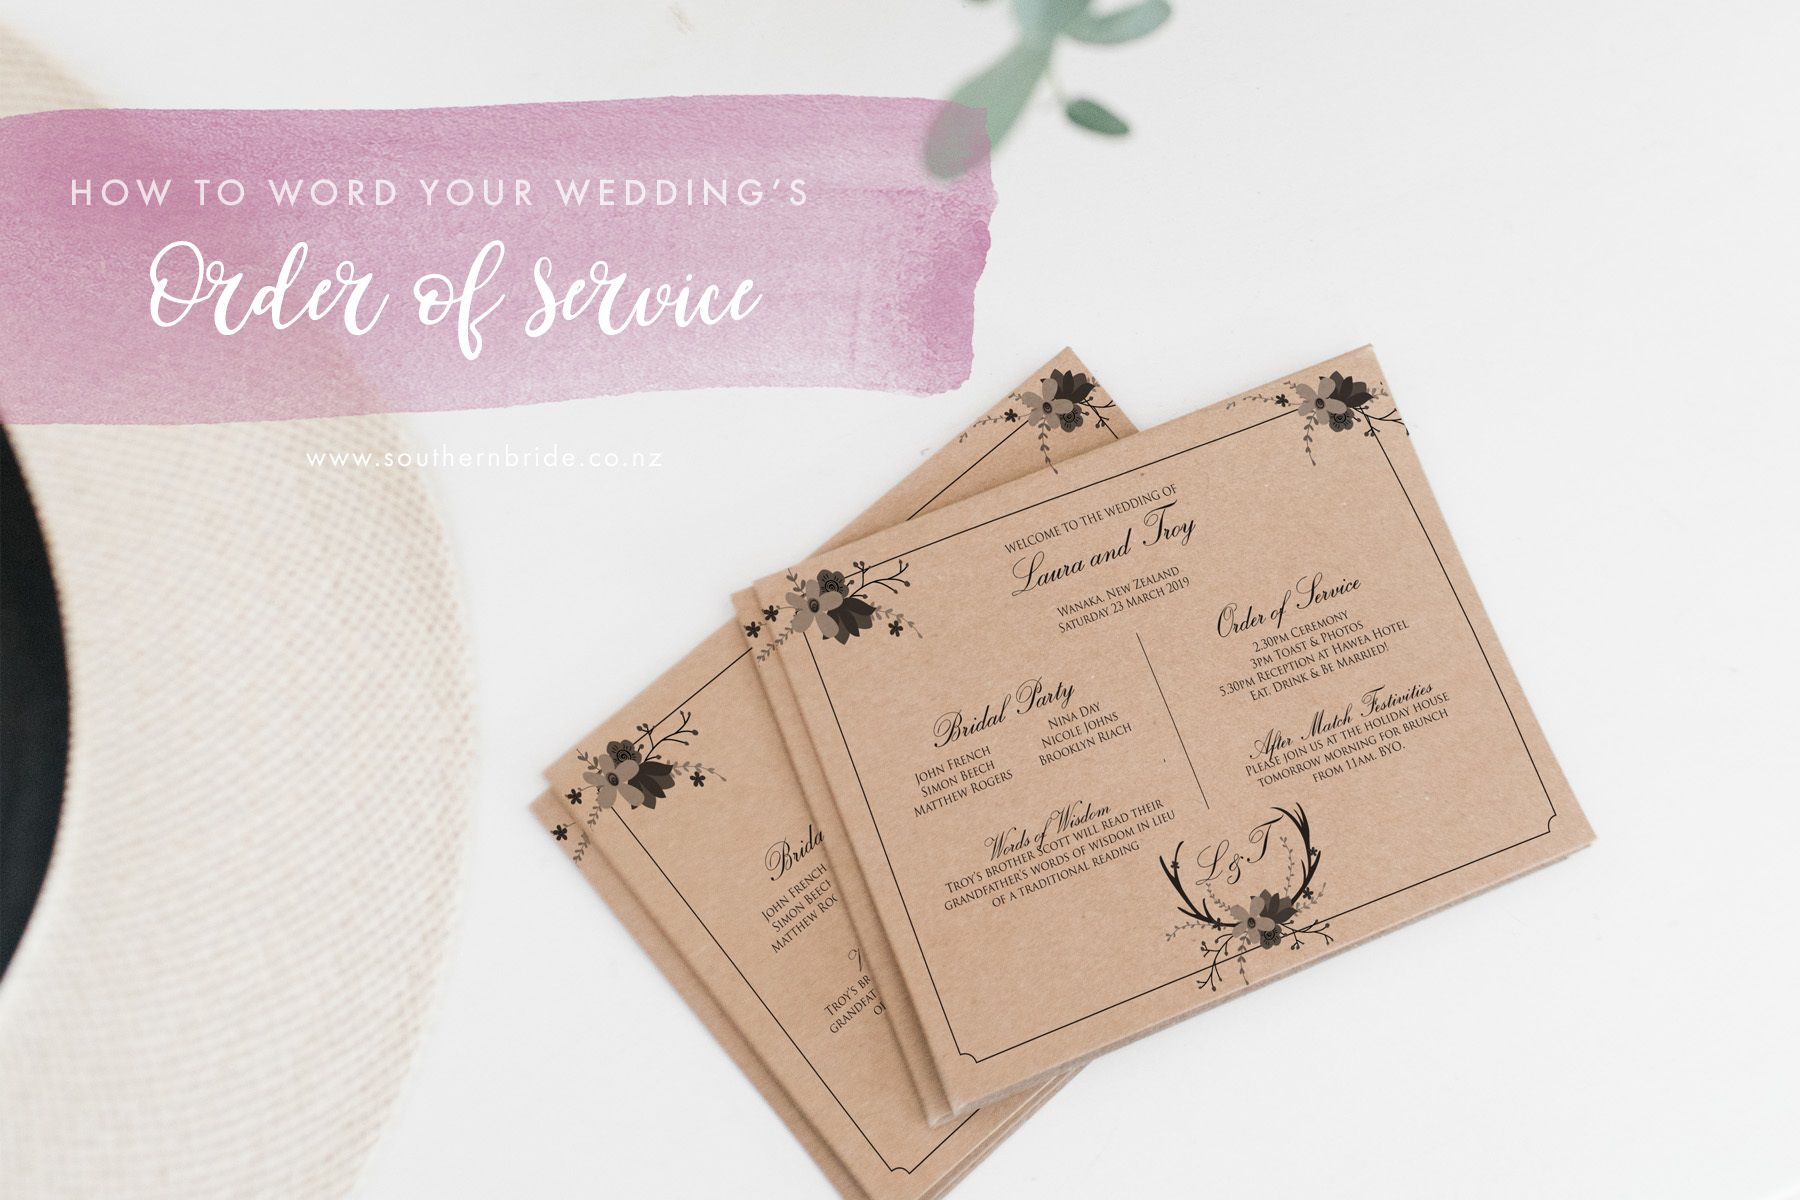 007 Unique Free Wedding Order Of Service Template Word Image  MicrosoftFull